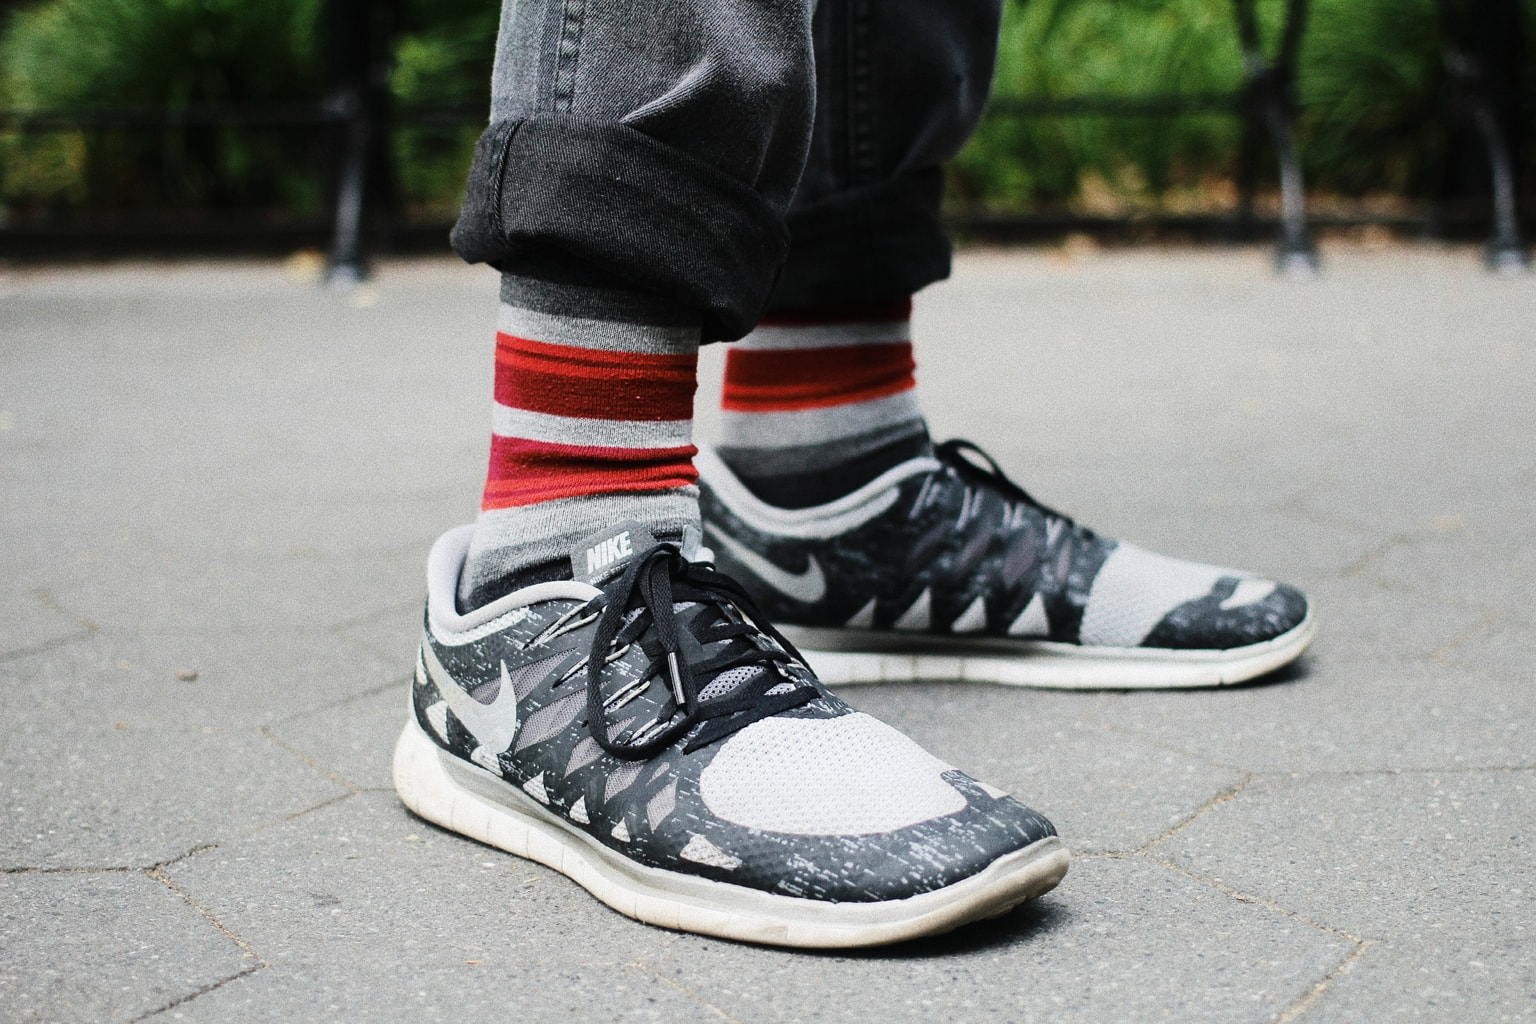 Guy's fashion in college: Nike sneakers and red and white striped socks